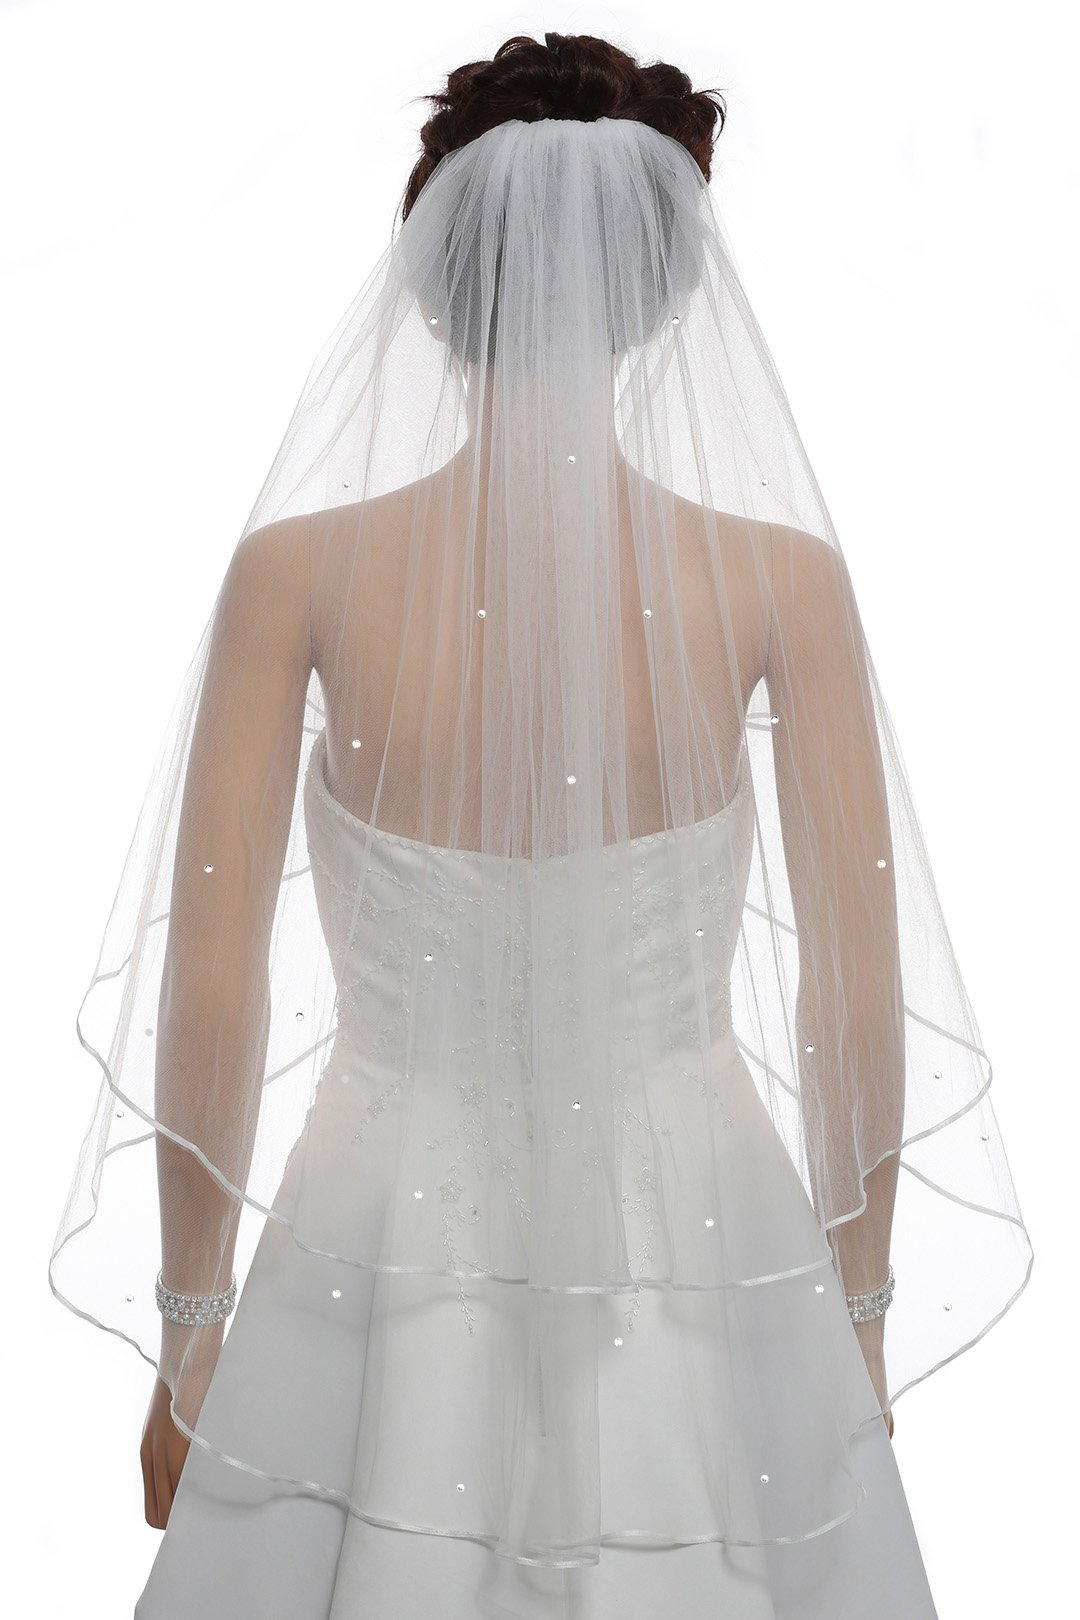 2T 2 Tier 1/8'' Ribbon Crystal Circular Veil - Ivory Fingertip Length 36'' V511